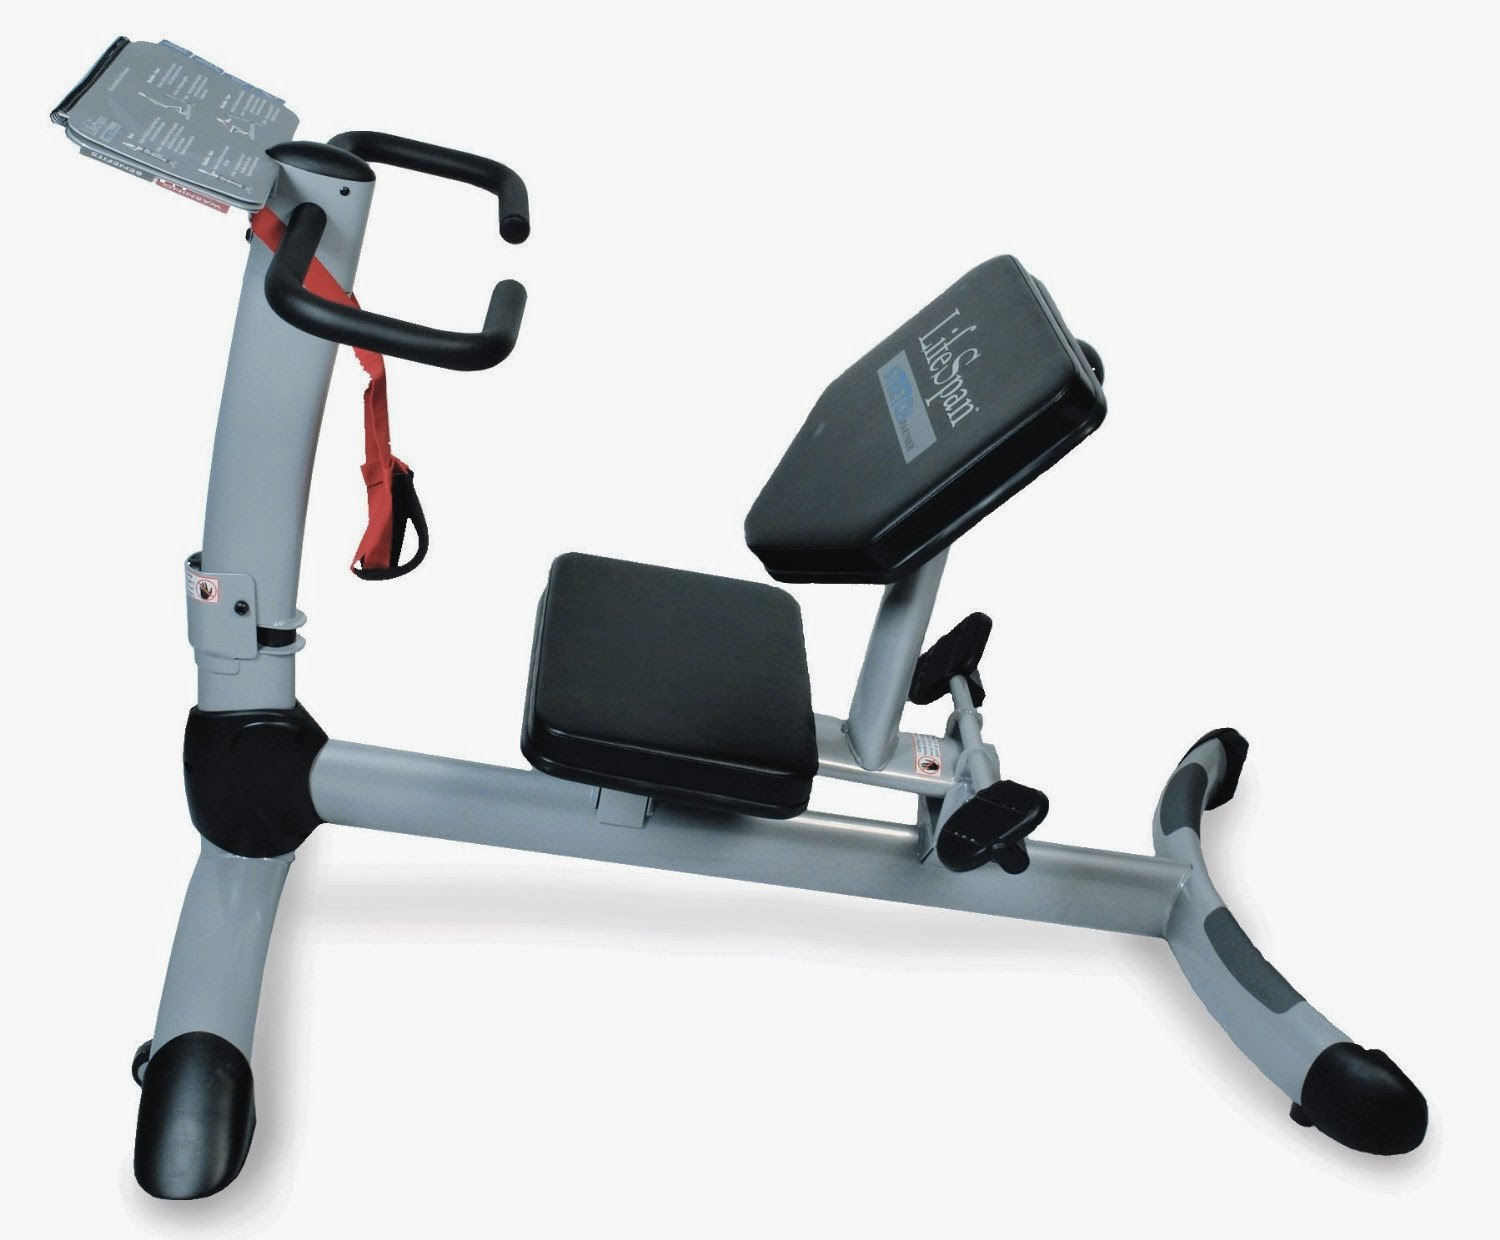 LifeSpan Fitness SP1000 Stretch Partner Stretching Machine, review, helps to improve flexibility, balance and posture